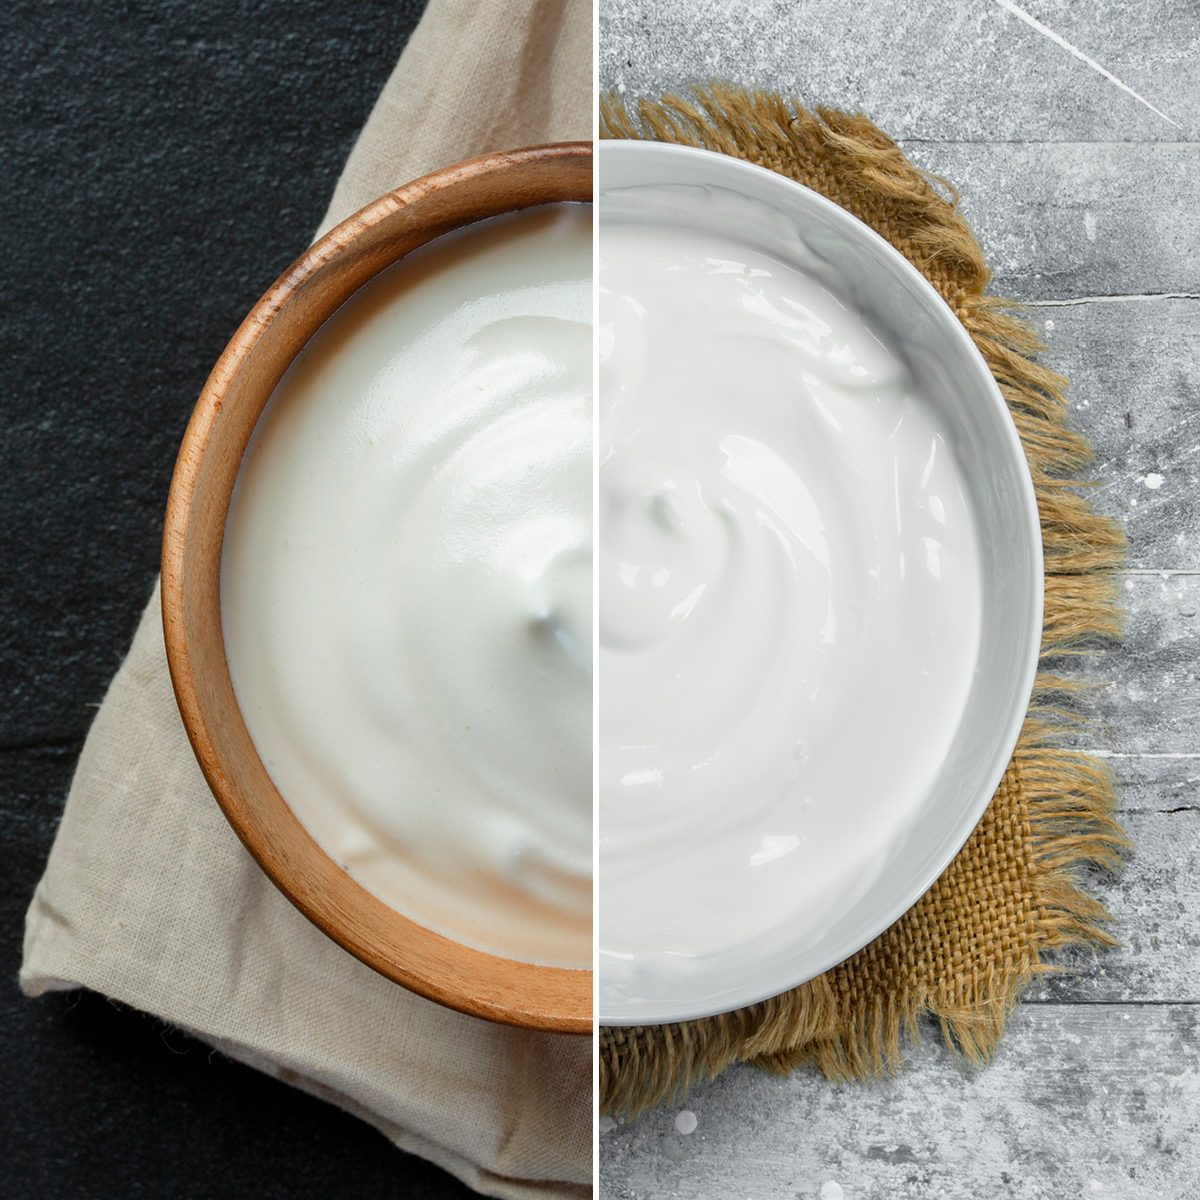 Natural yogurt; Shutterstock ID 568077193; Job (TFH, TOH, RD, BNB, CWM, CM): TOH Sour cream in bowl . On a rustic background.; Shutterstock ID 1336183736; Job (TFH, TOH, RD, BNB, CWM, CM): TOH